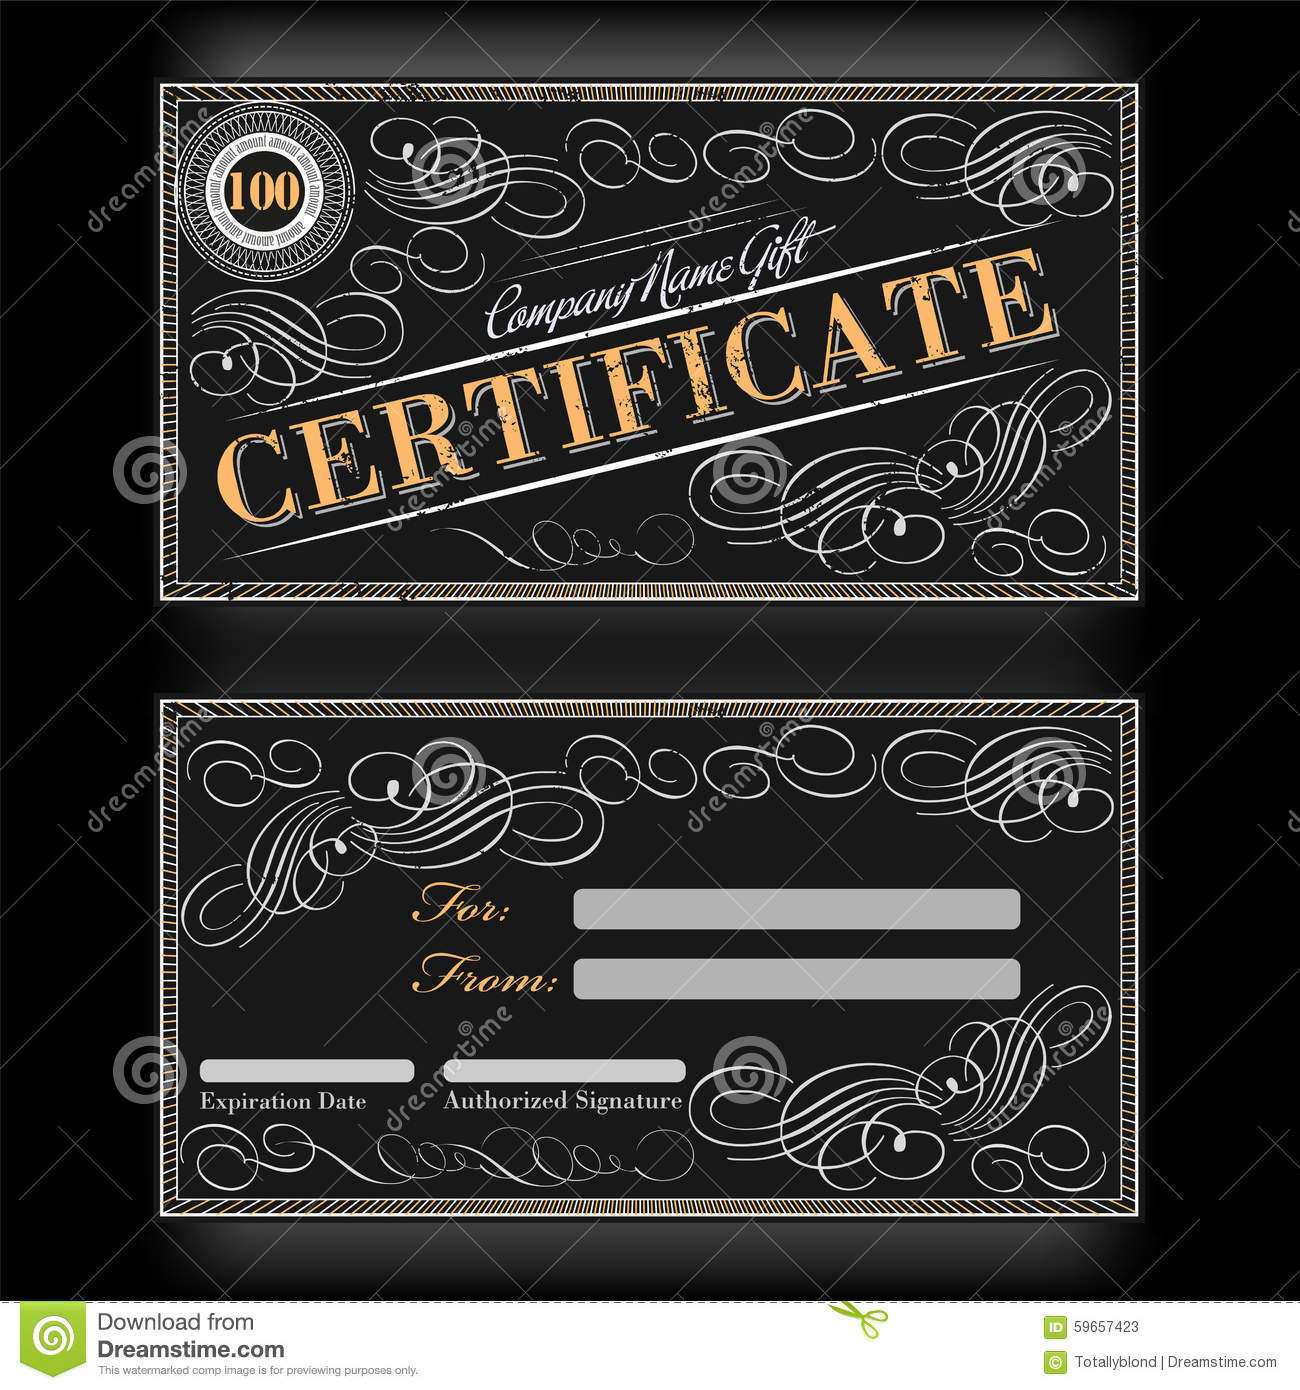 Gift certificate template black floral design stock vector for Calligraphy certificate templates